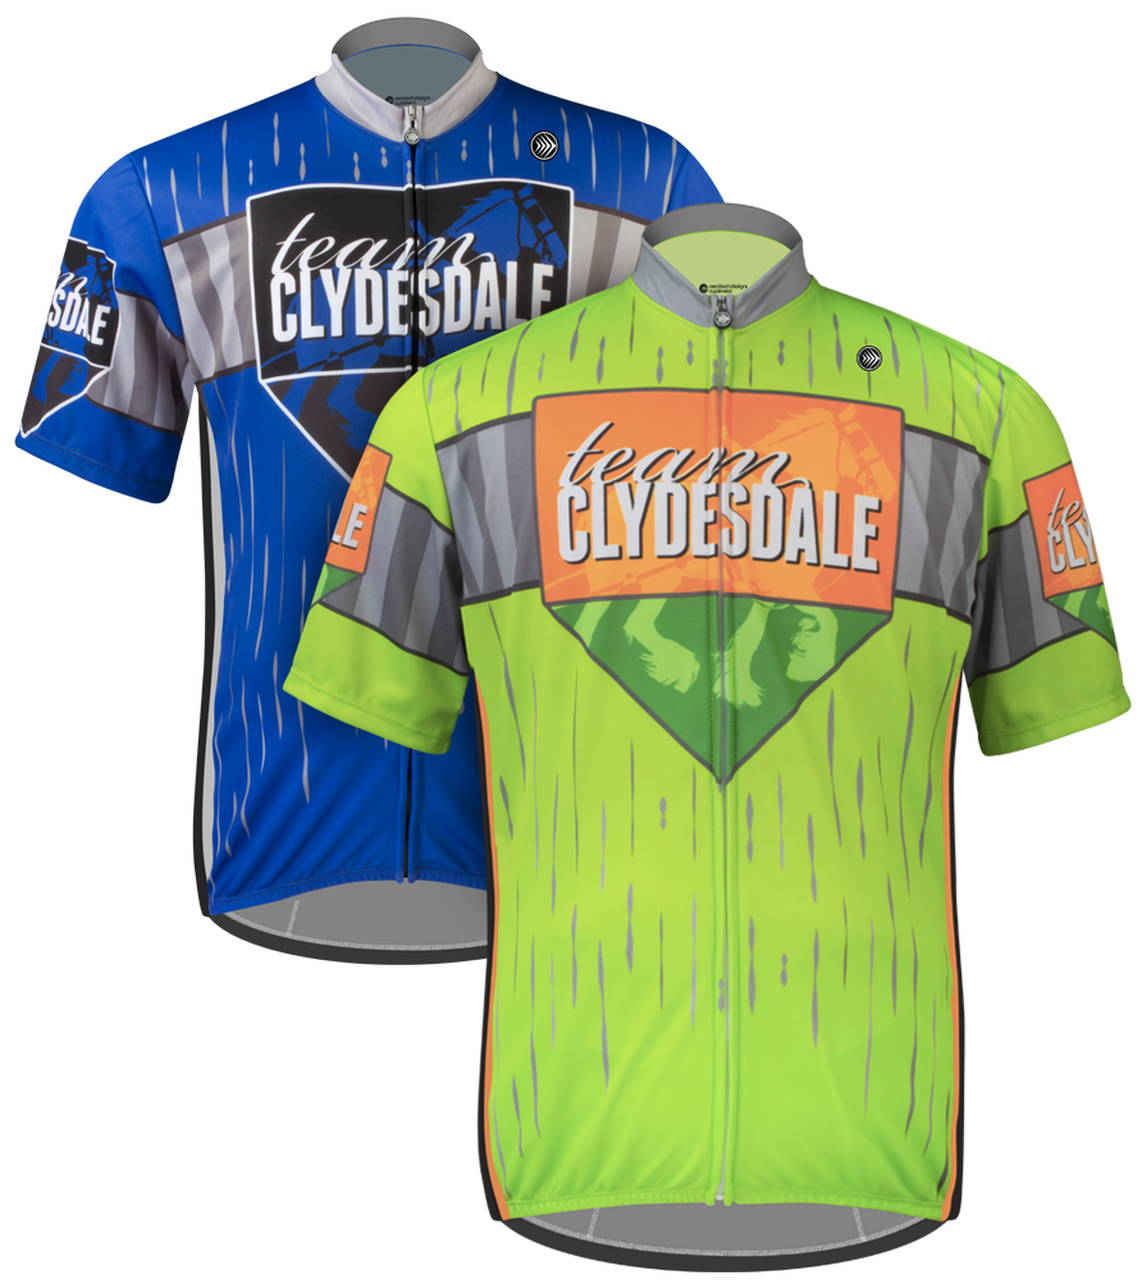 team clydesdale Cycling Jersey